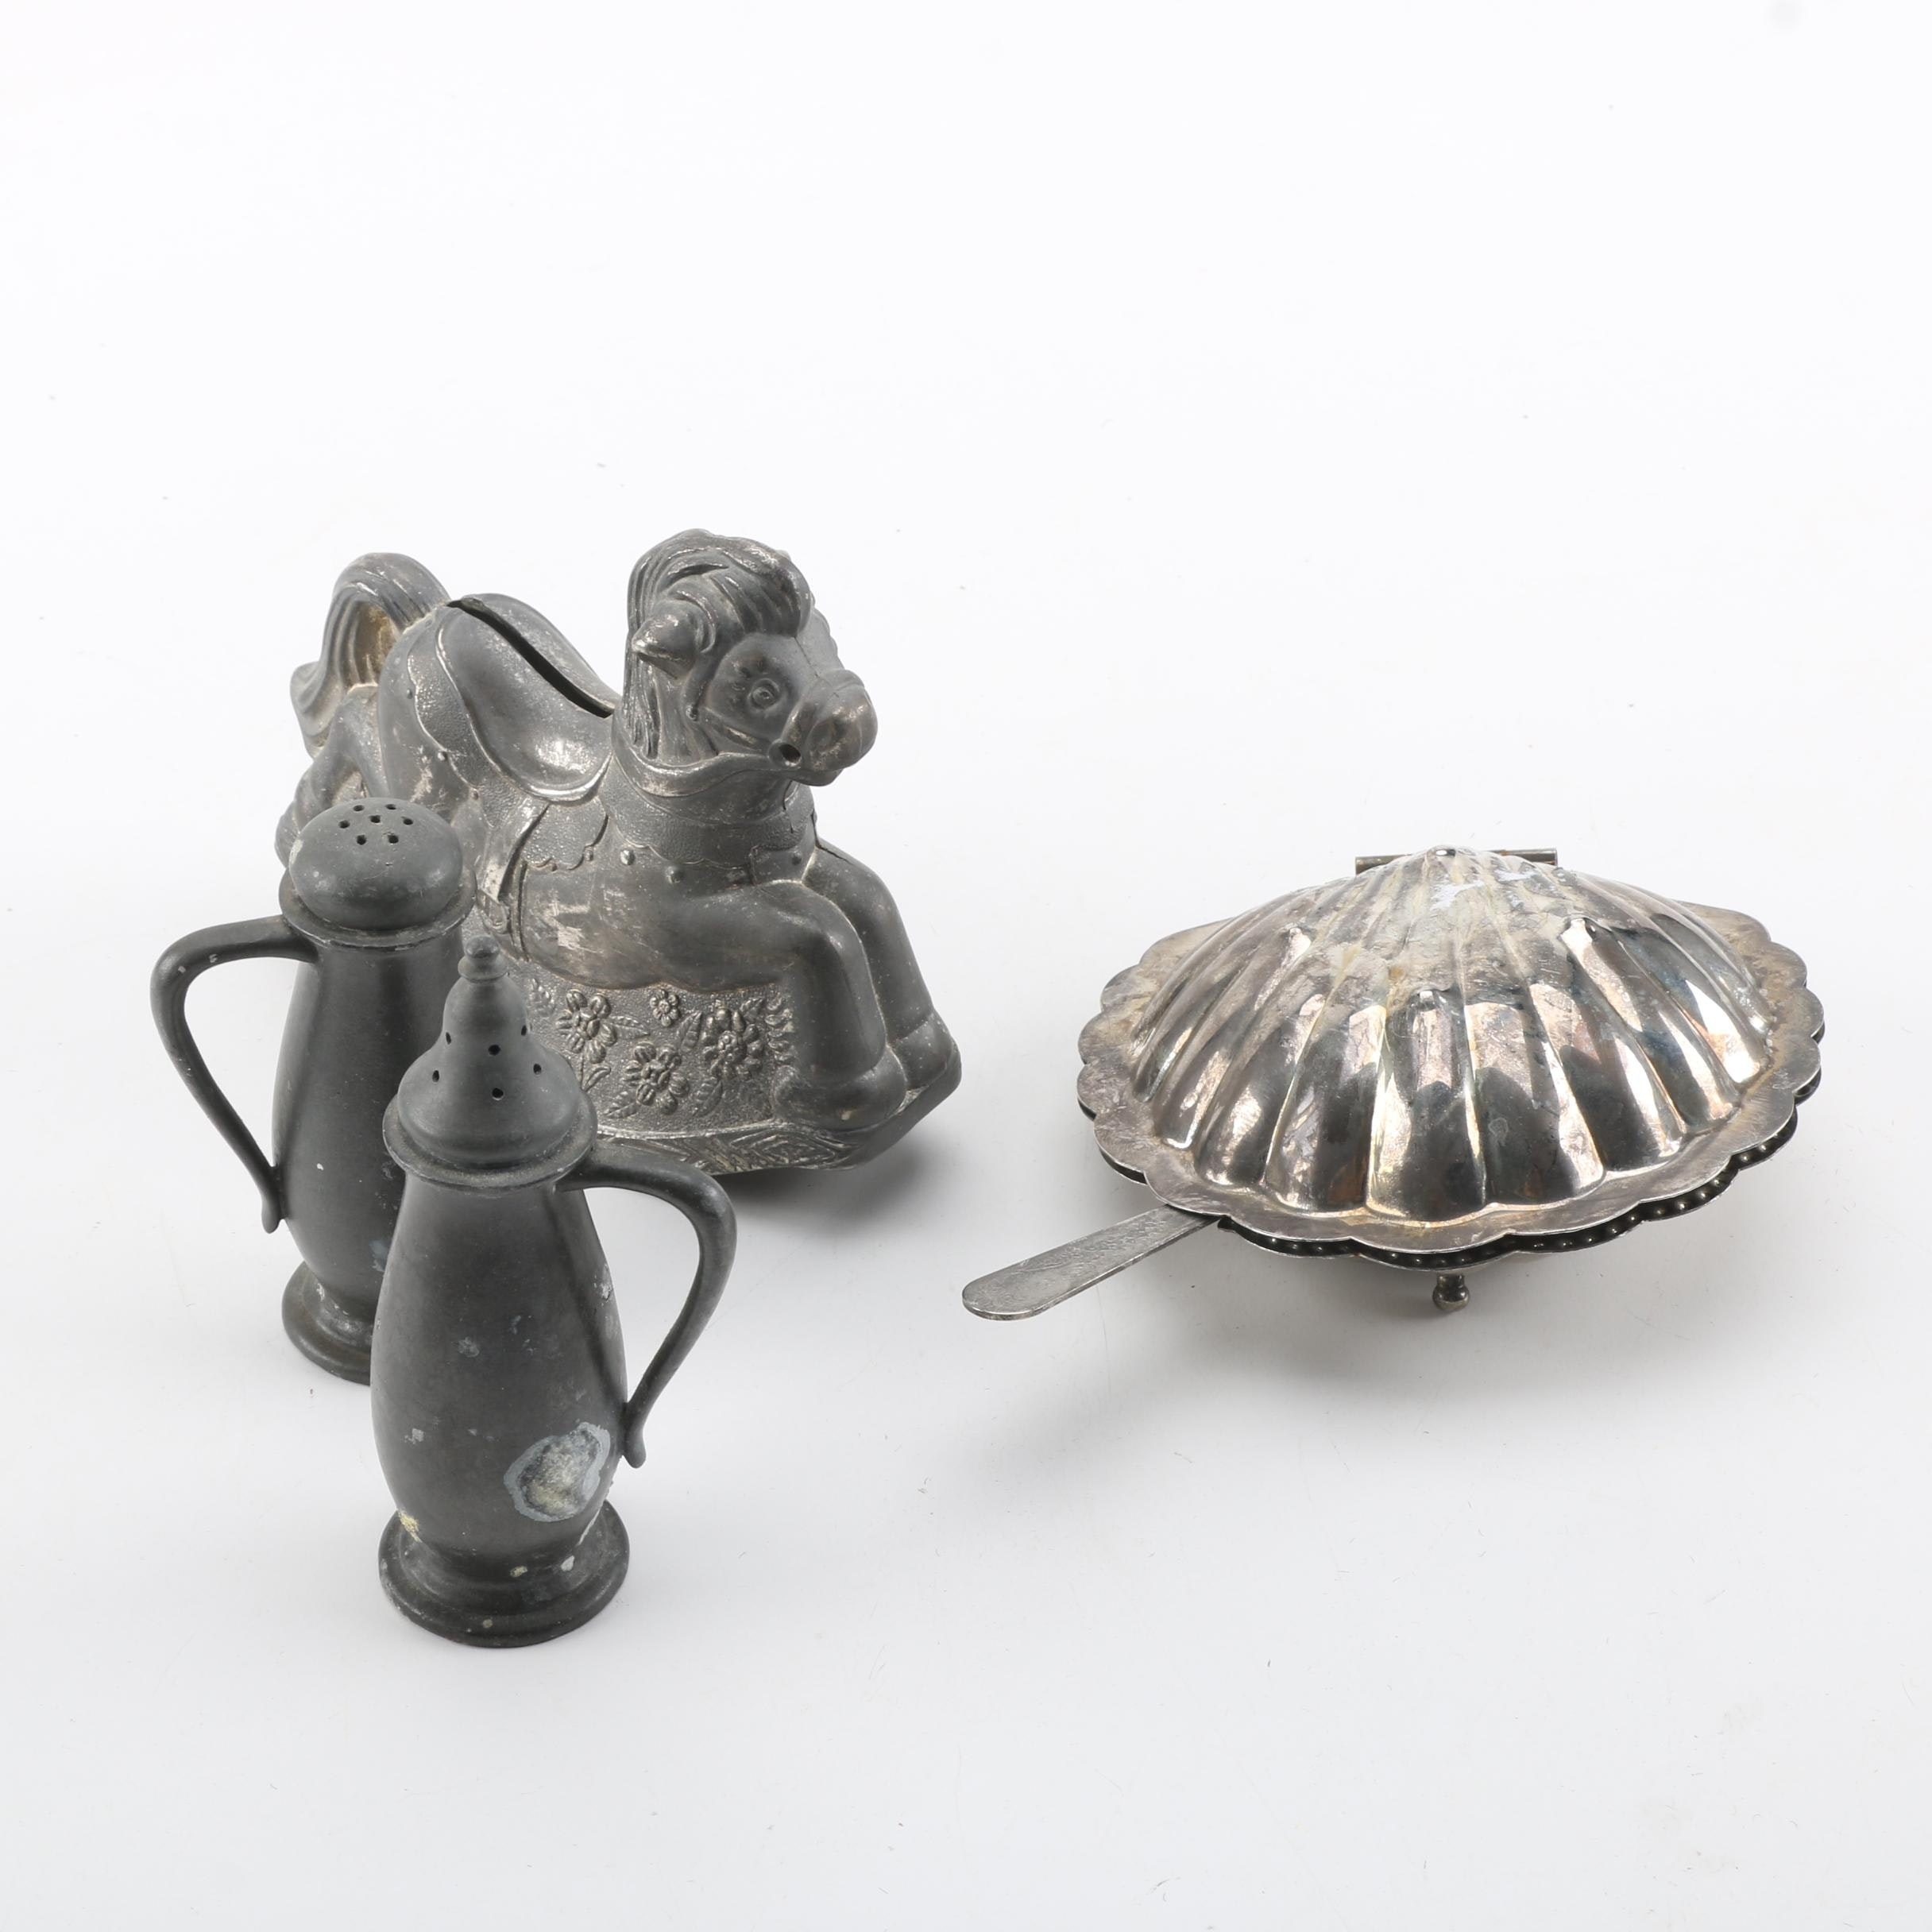 Metal Decorative Items